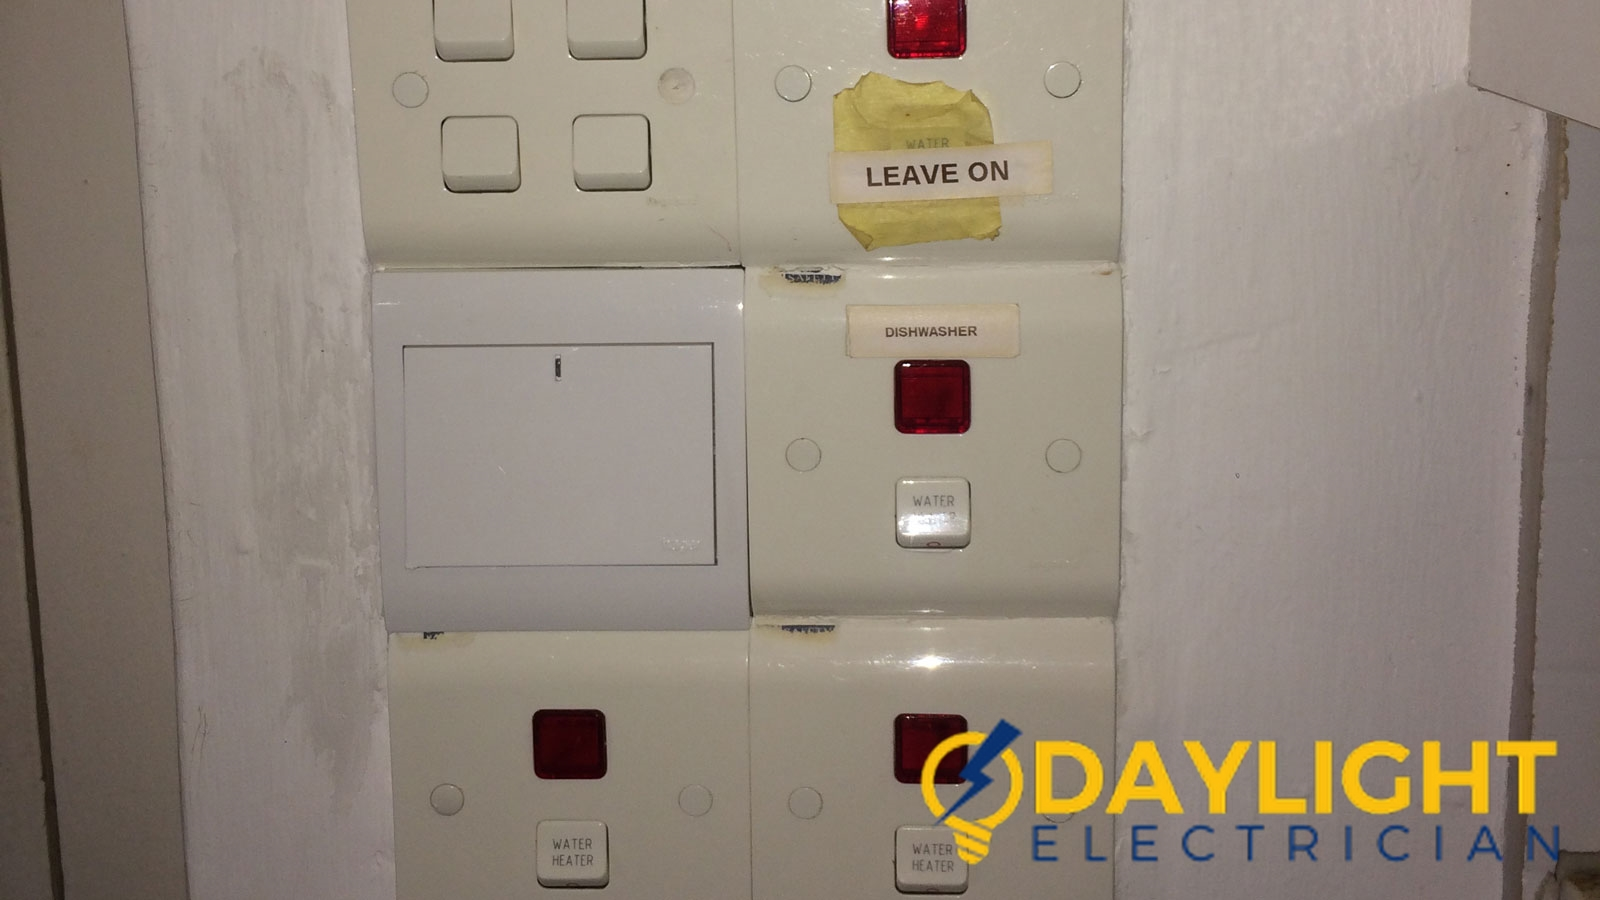 water heater switch replacement daylight electrician singapore hdb hougang 2